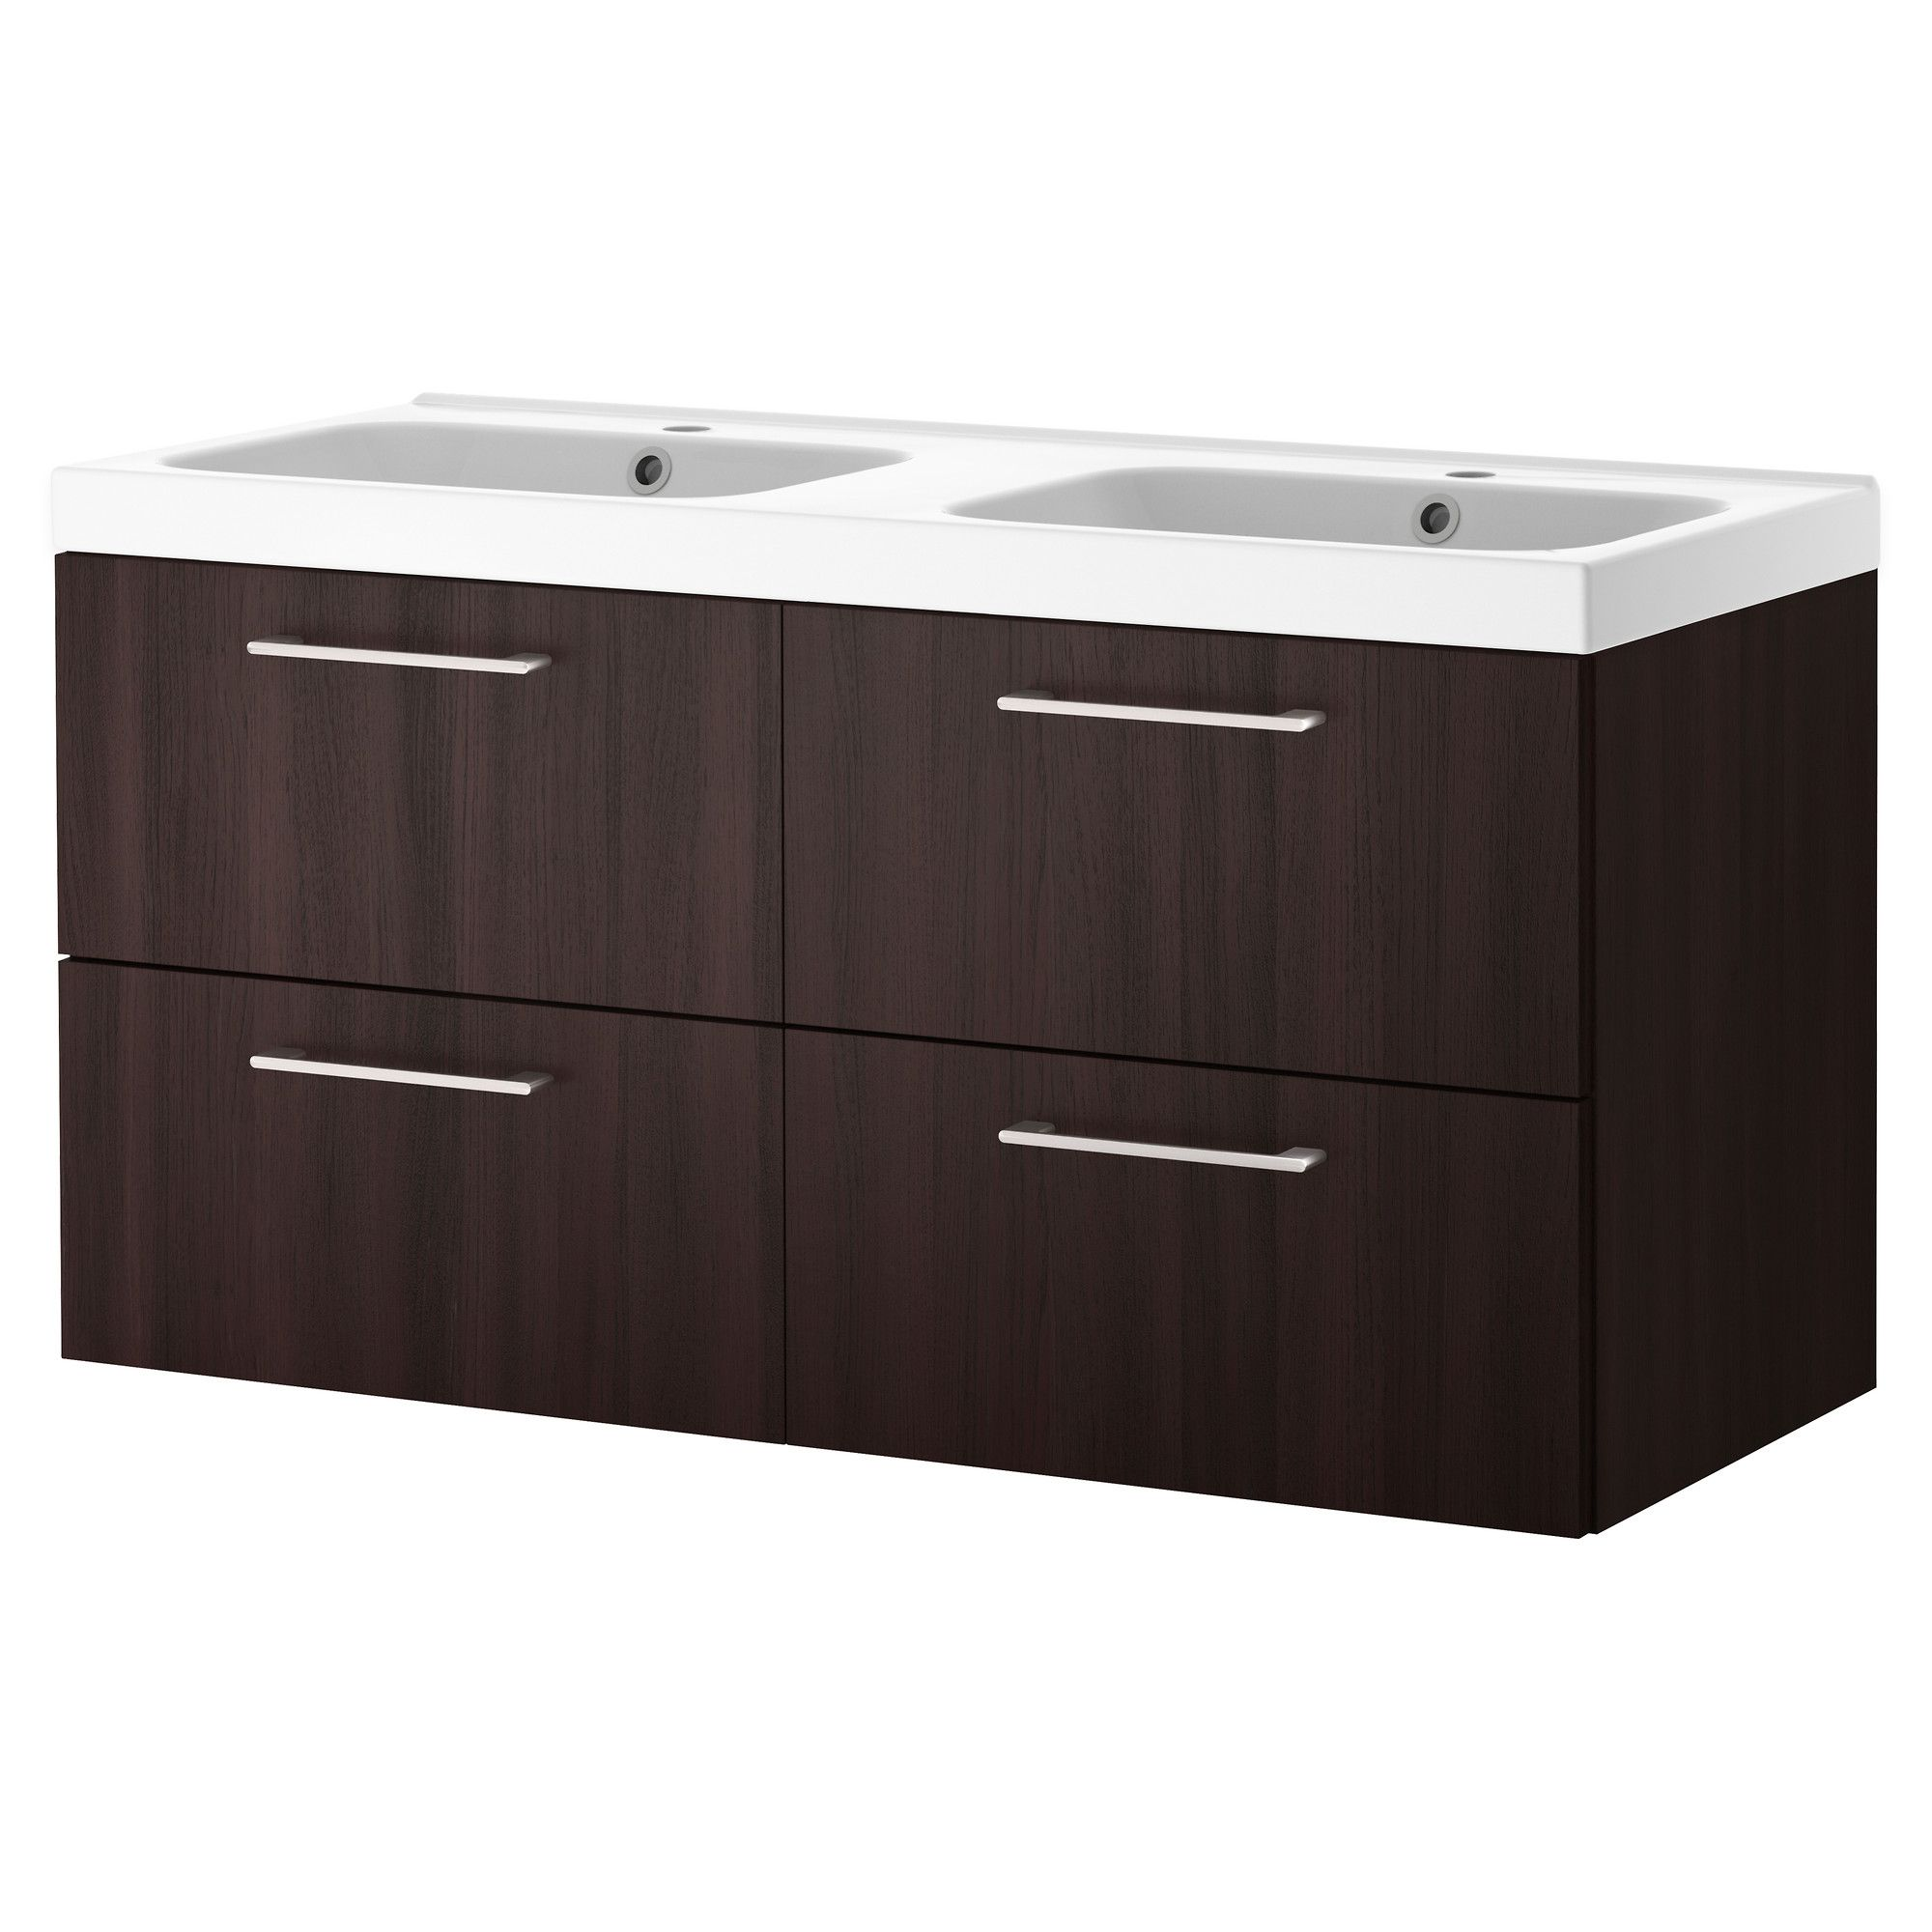 Godmorgon Odensvik Sink Cabinet With 4 Drawers Black Brown 47 1 4x19 1 4x25 1 4 Ikea